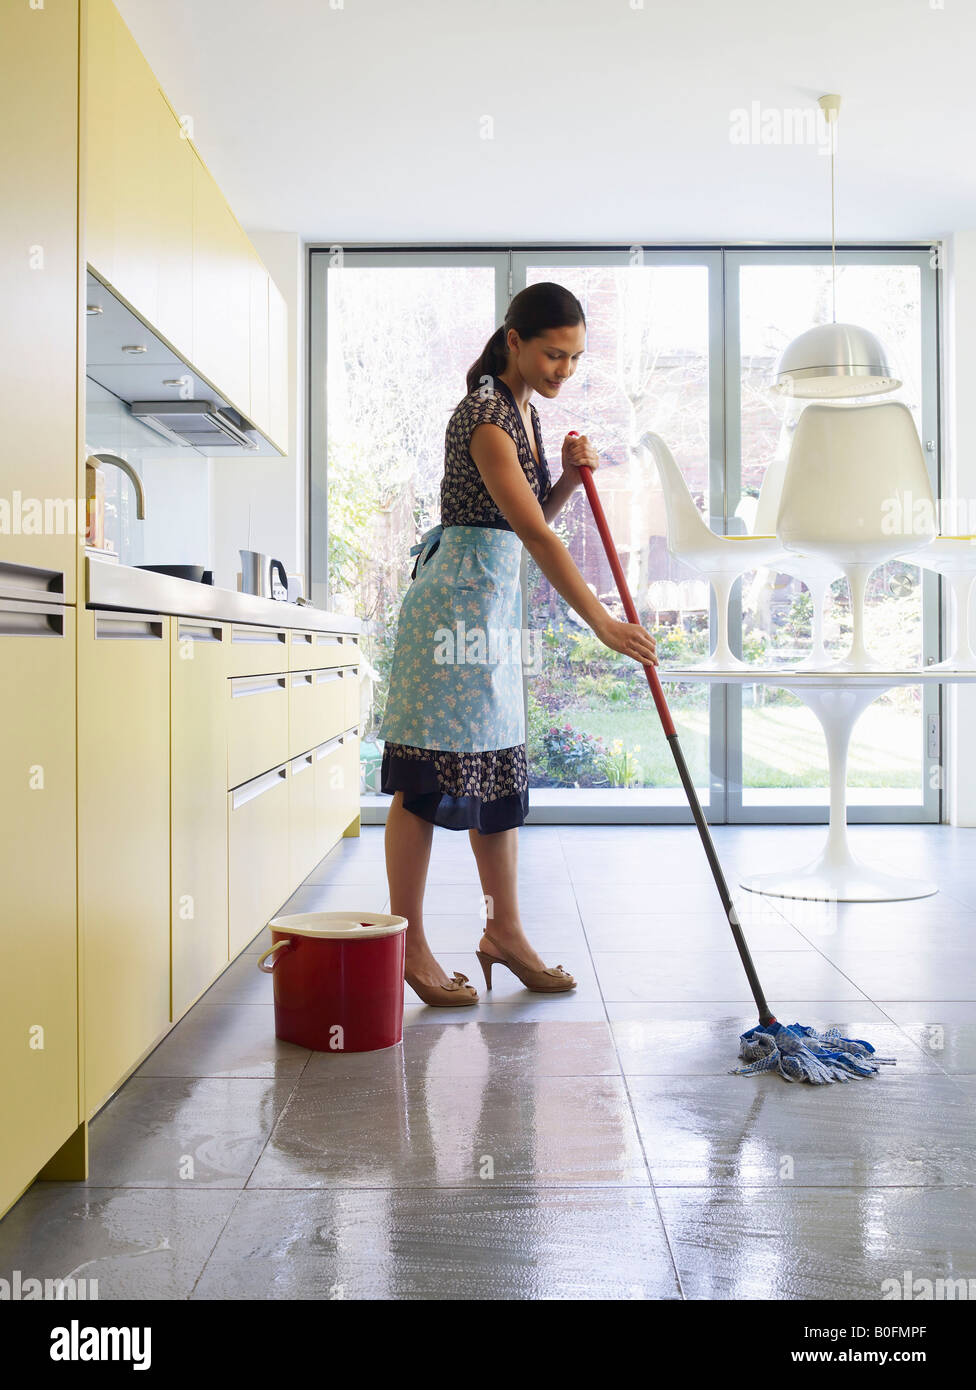 Young woman mopping kitchen floor Stock Photo   Alamy